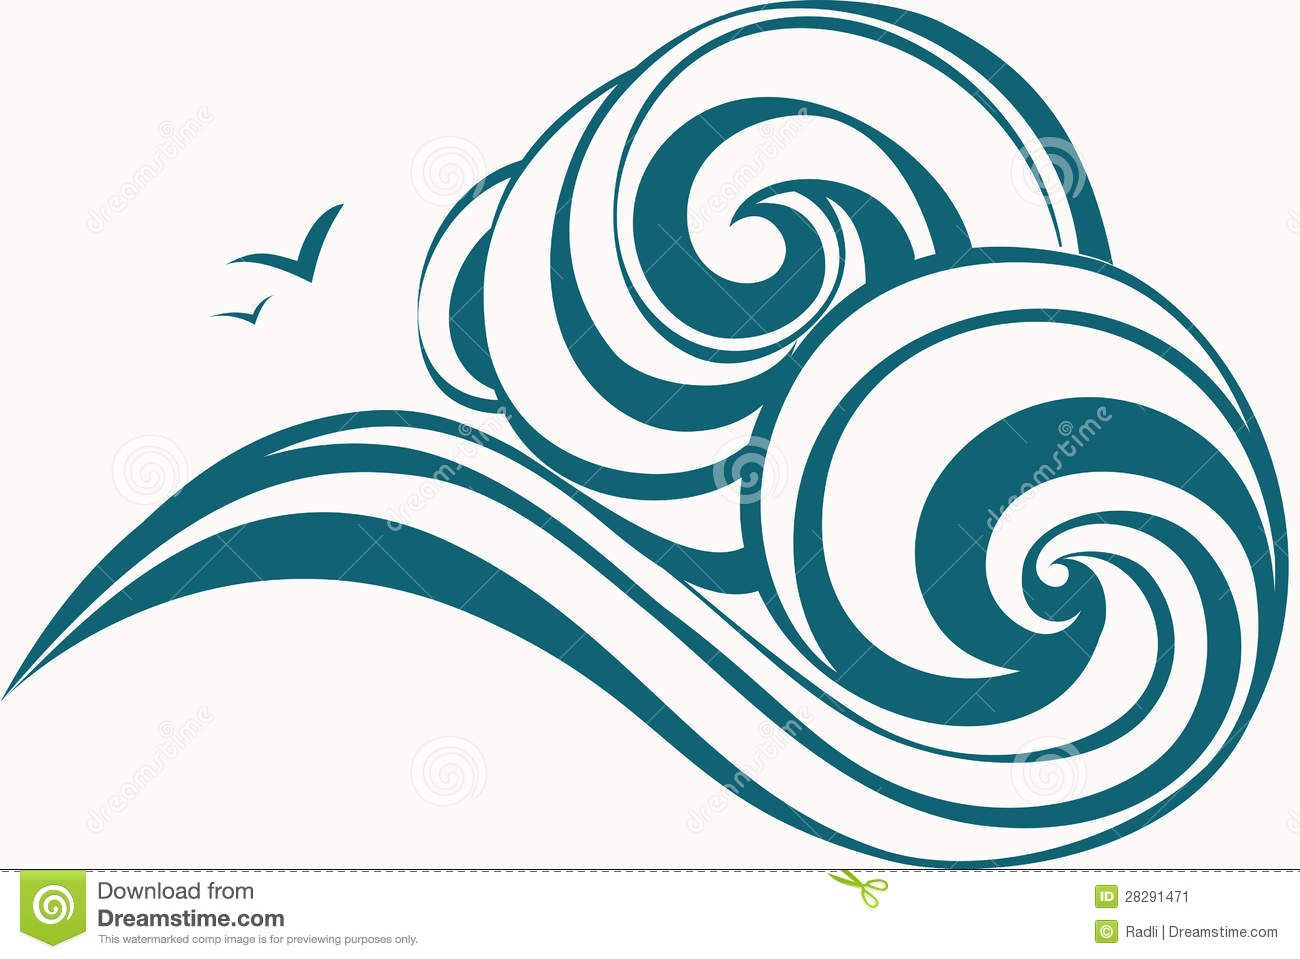 Ocean Waves Clipart | Clipart Panda - Free Clipart Images